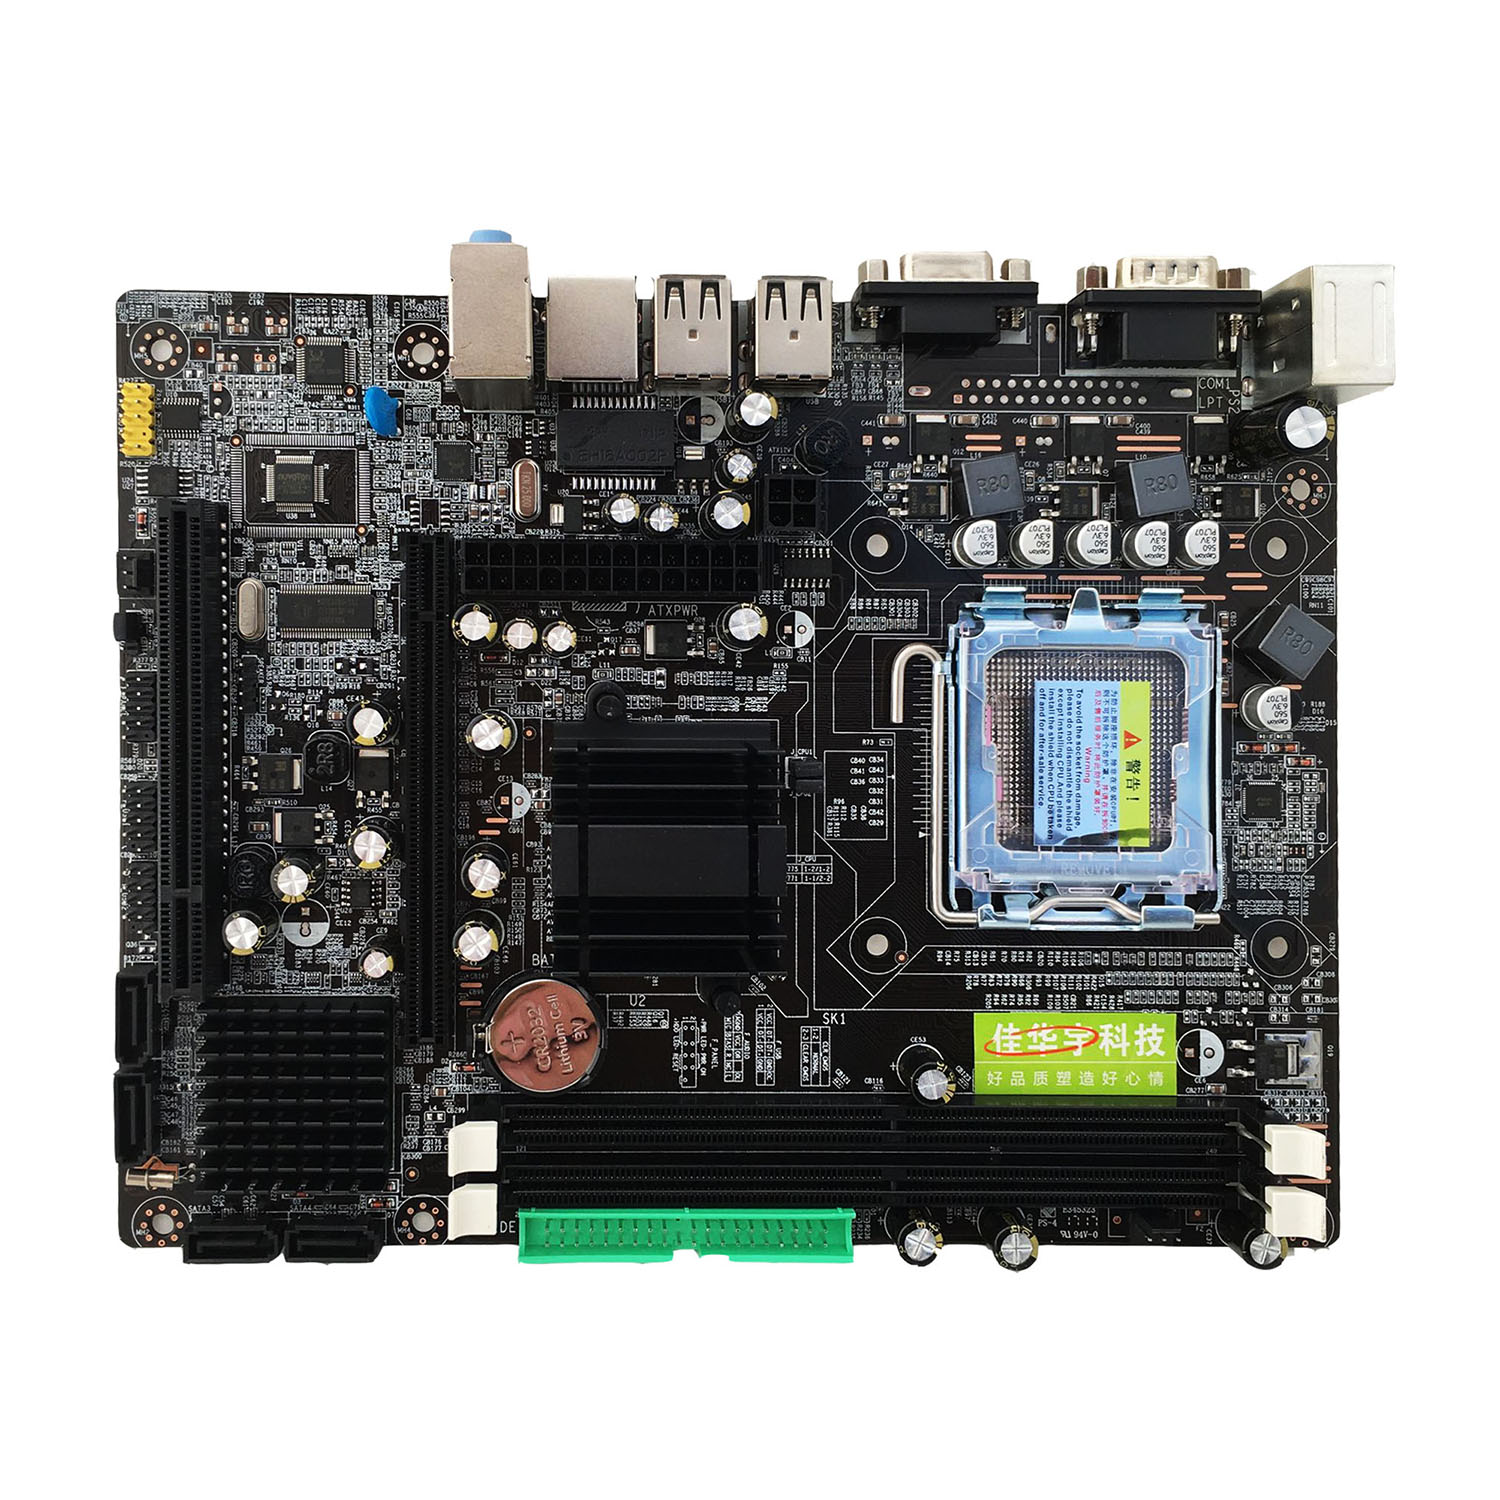 Jia Huayu NEW Professional 945 Motherboard 945GC ICH Chipset Support LGA 775 667 800MHz SATA2 Ports